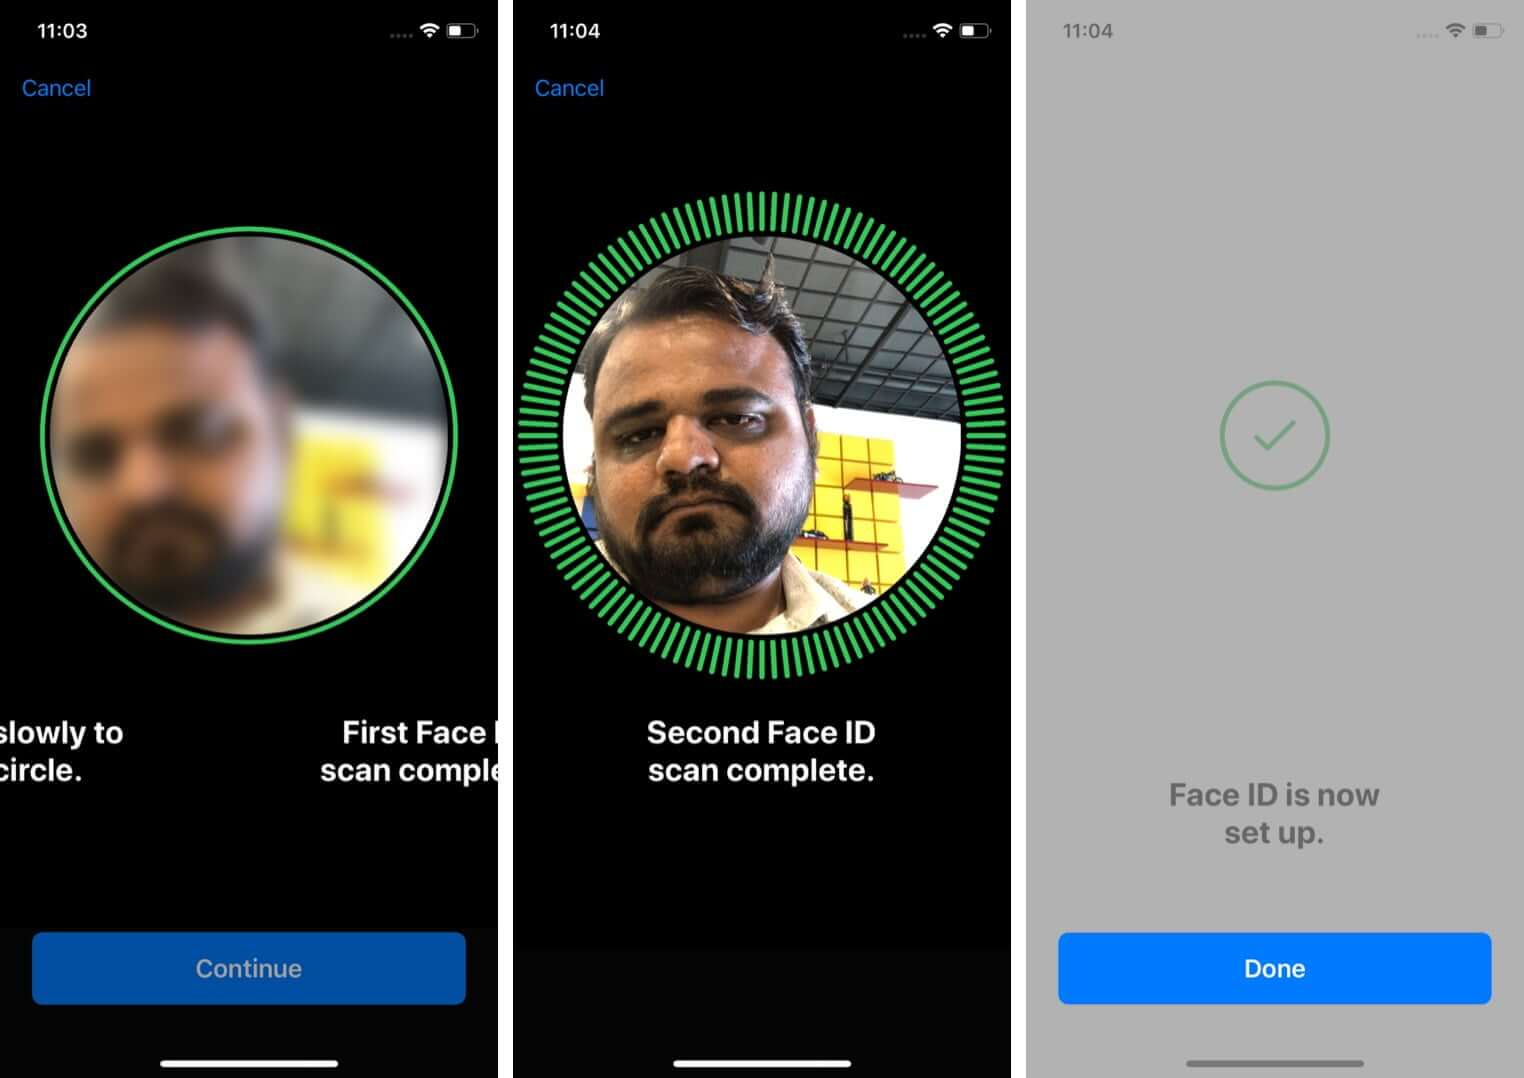 Set Up Face ID on iPhone